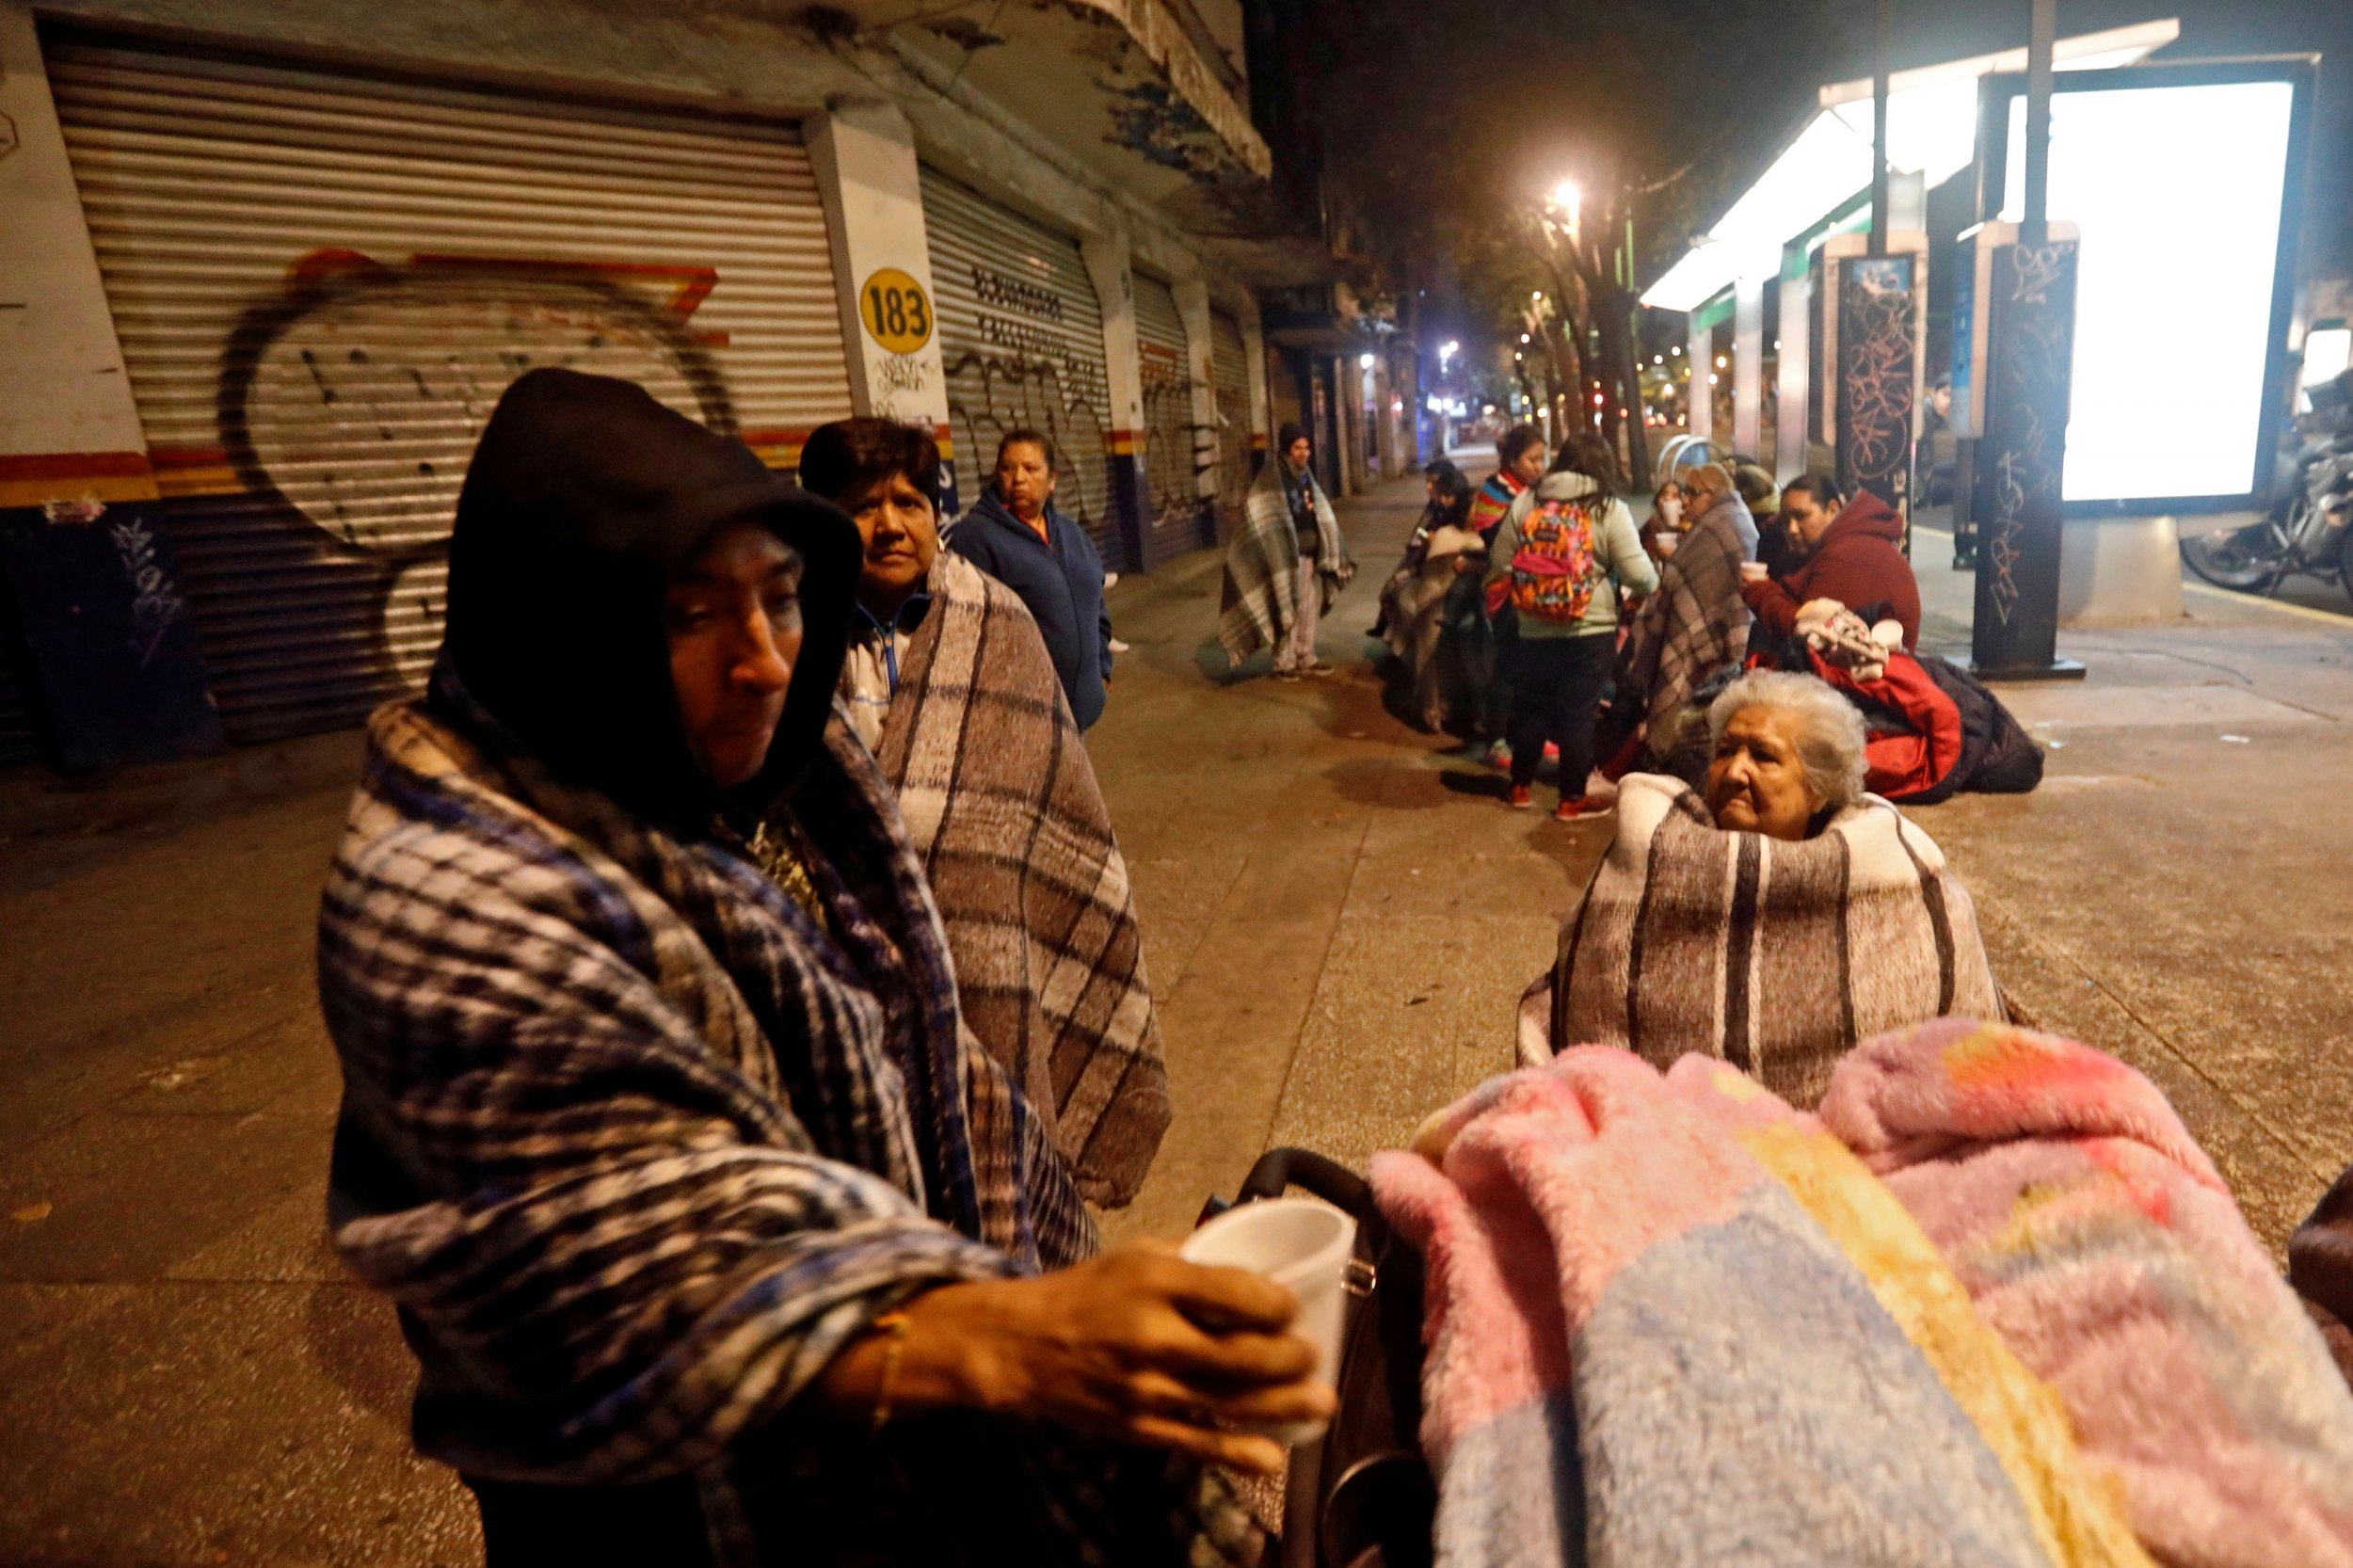 Mexico earthquake, people gather in the street